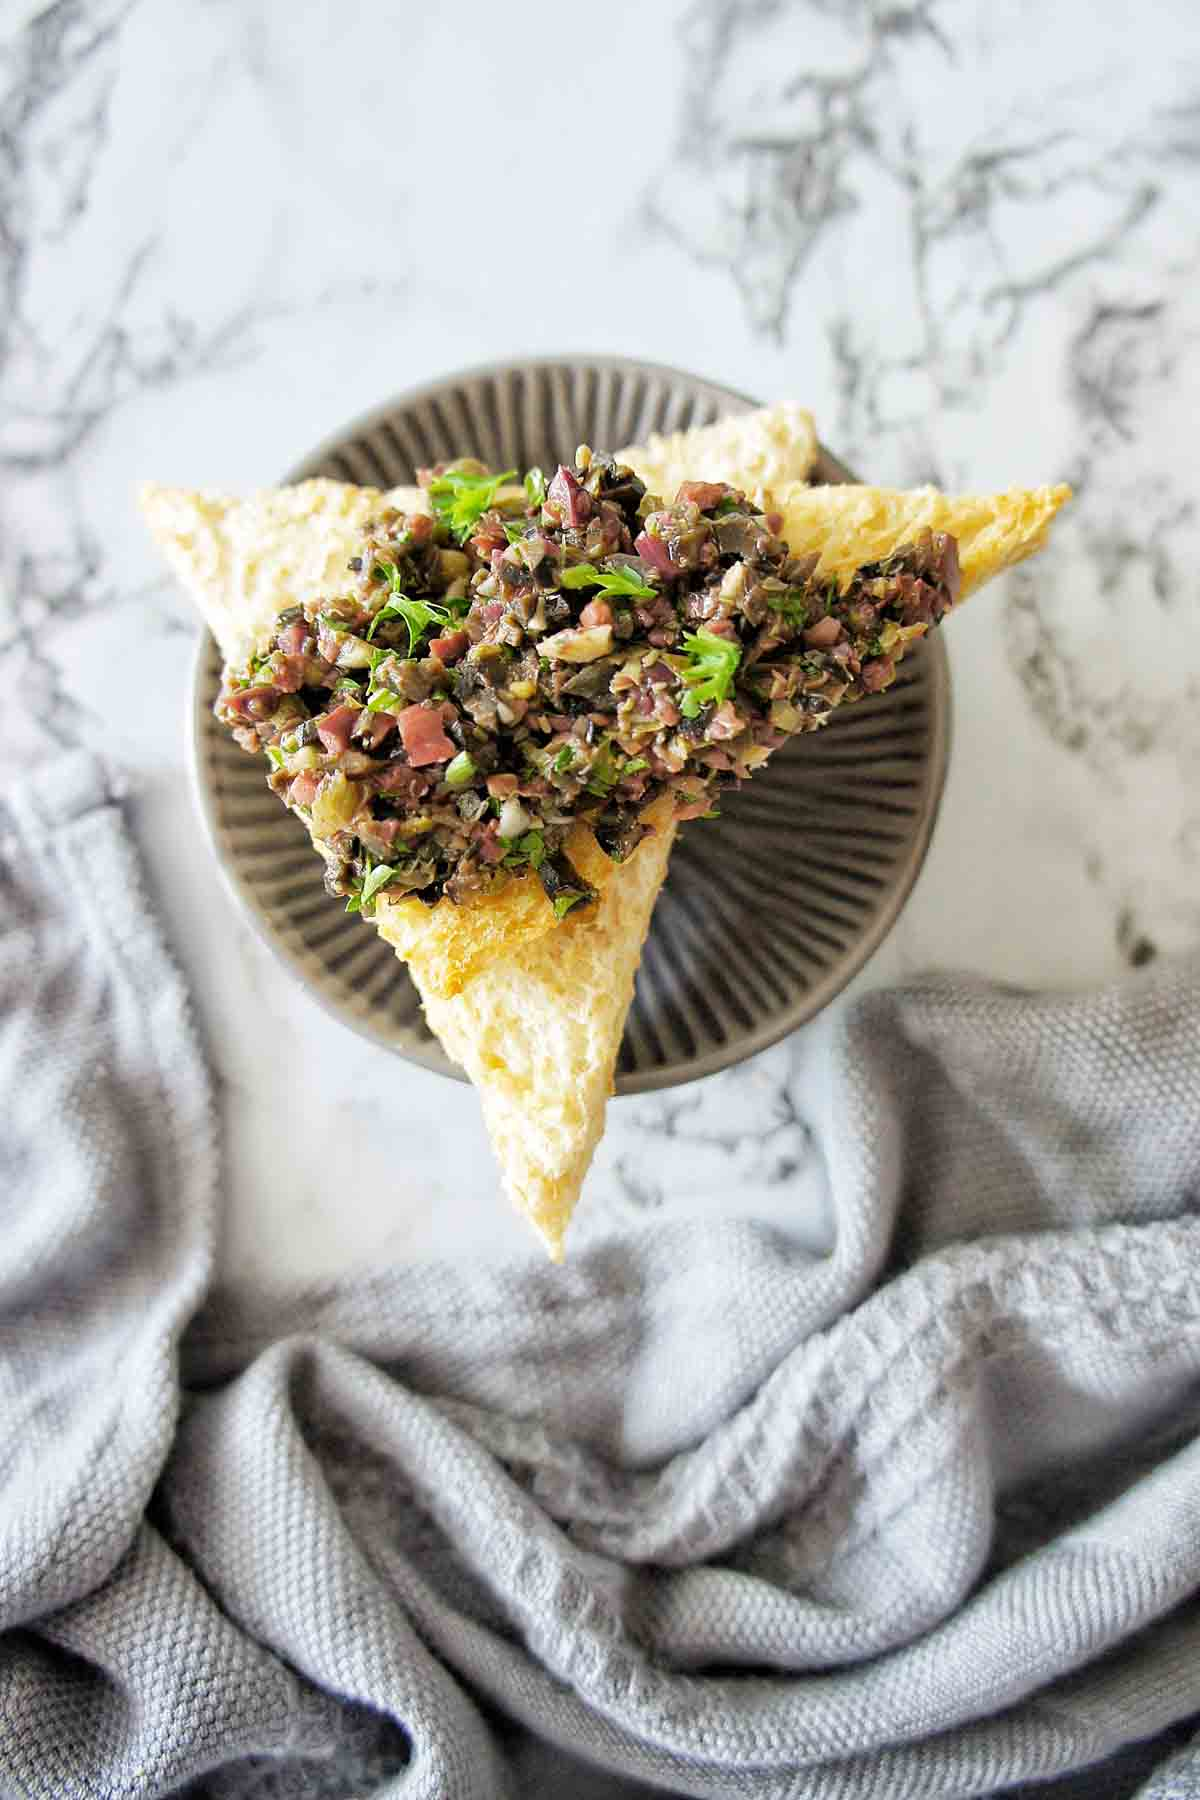 Black Olive Tapenade spread on toast points